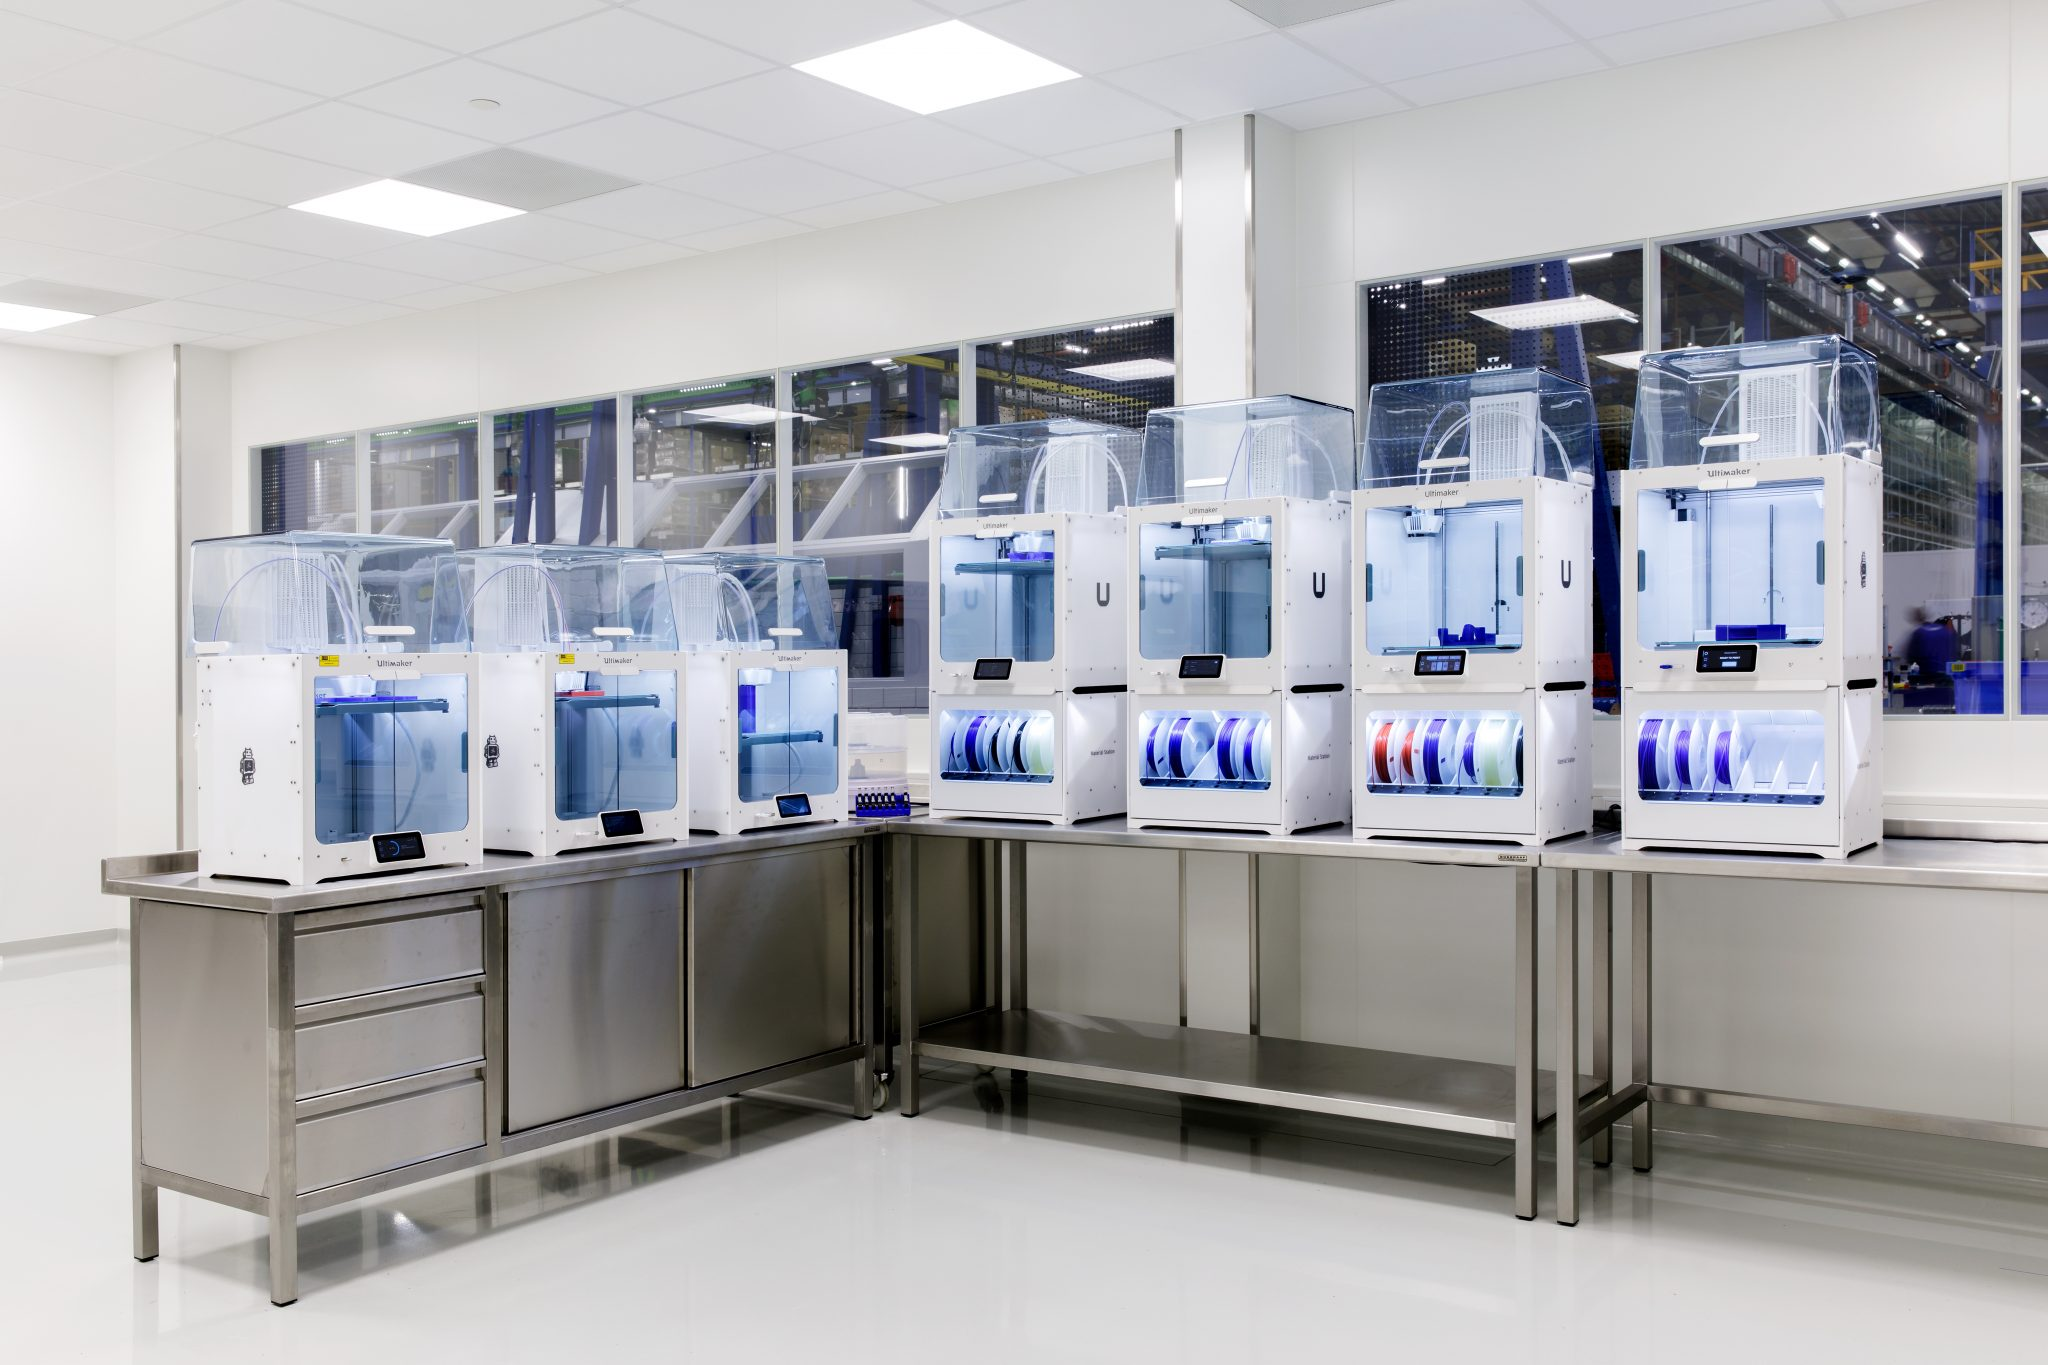 Ultimaker S5 3D printers at ERIKS' facility. Photo via Ultimaker.